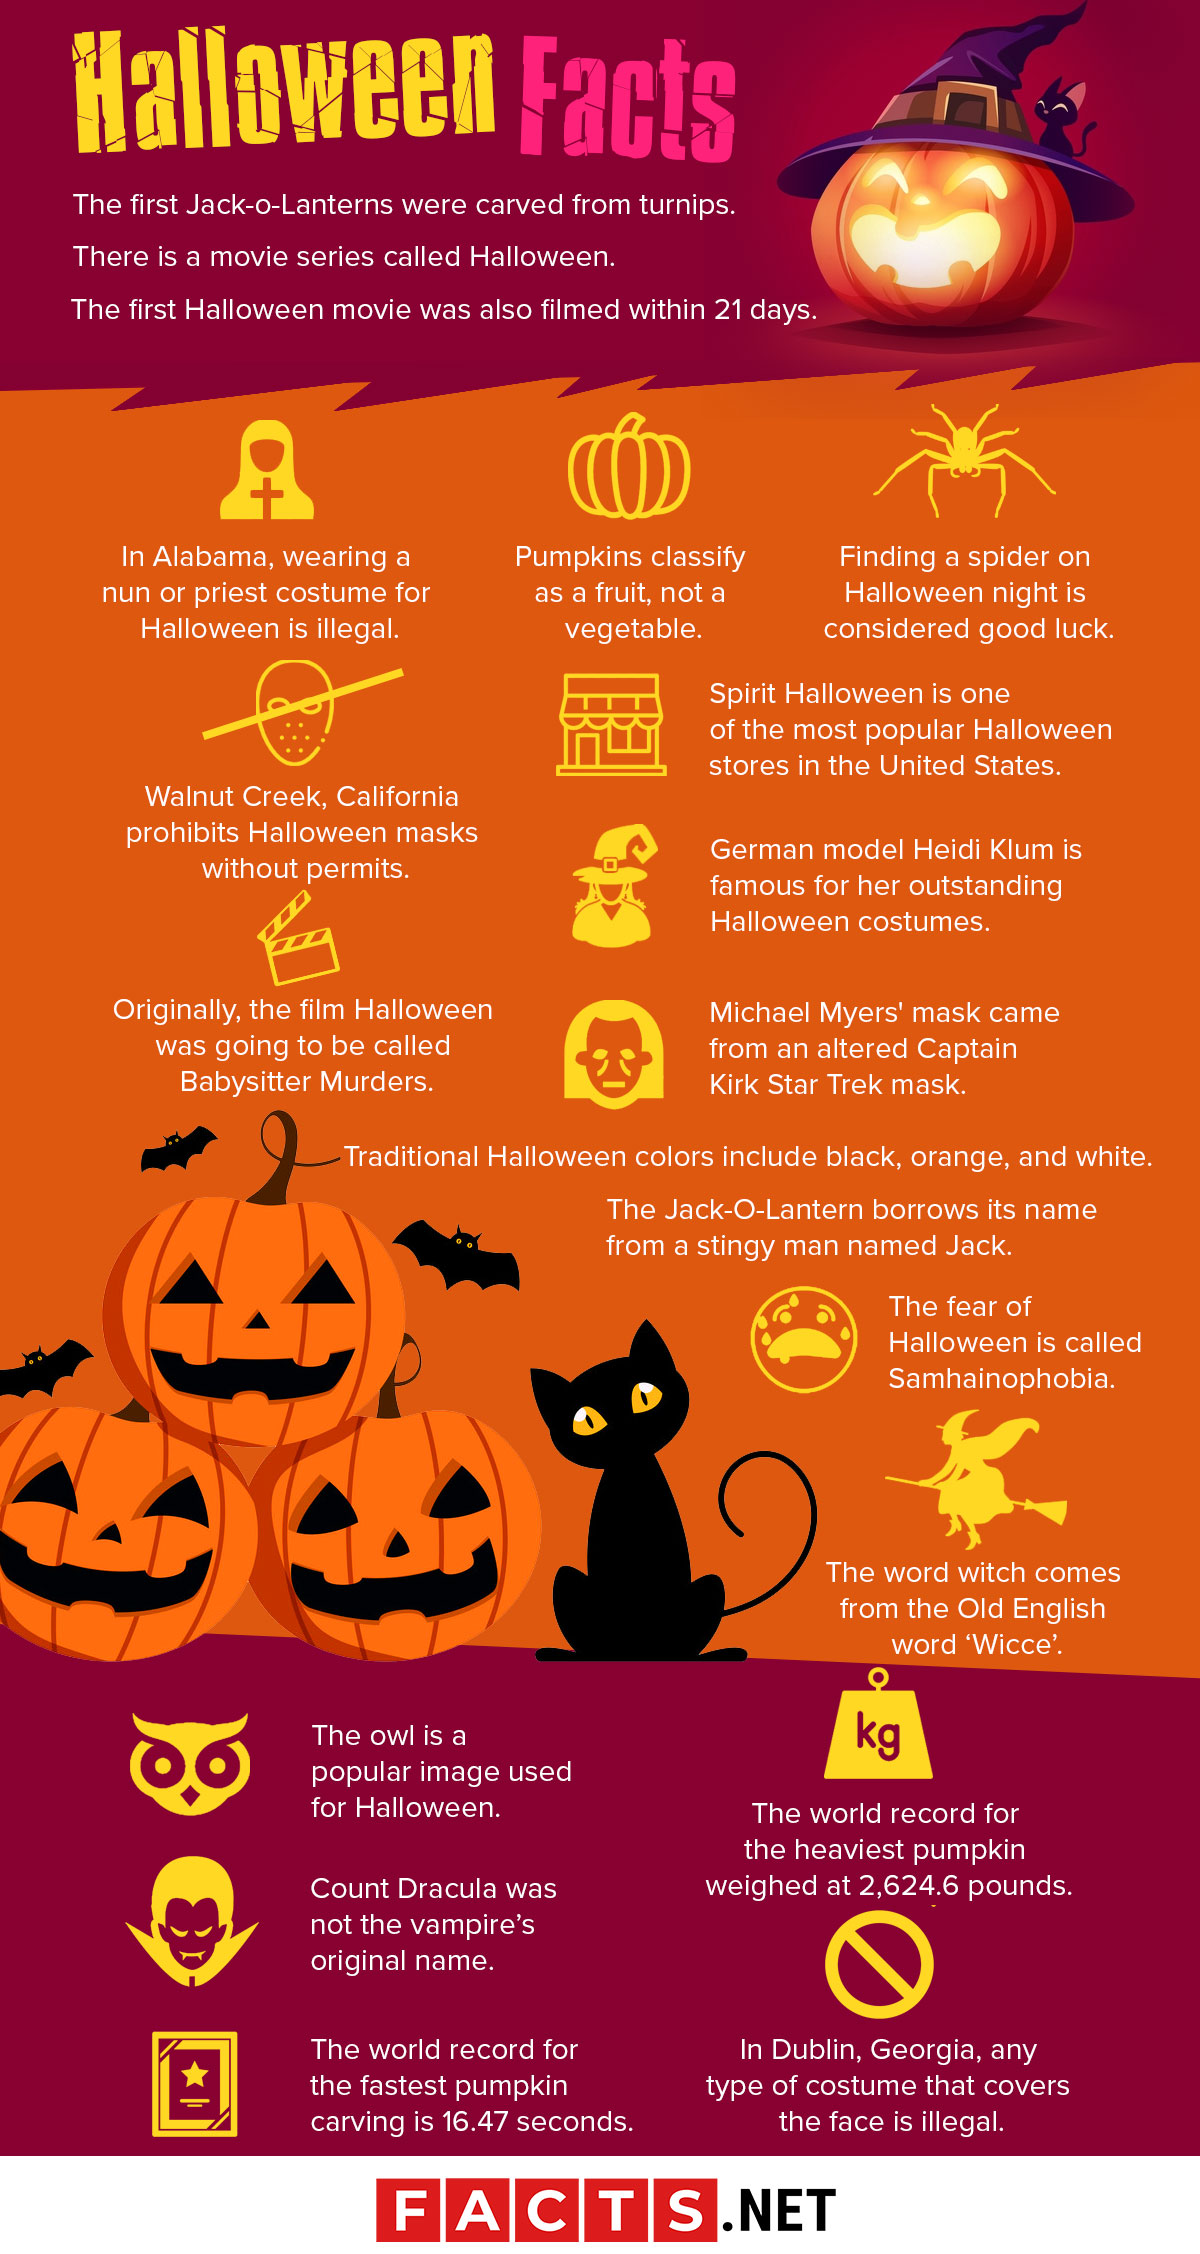 100 Interesting Halloween Facts About The Spookiest Time Of The Year